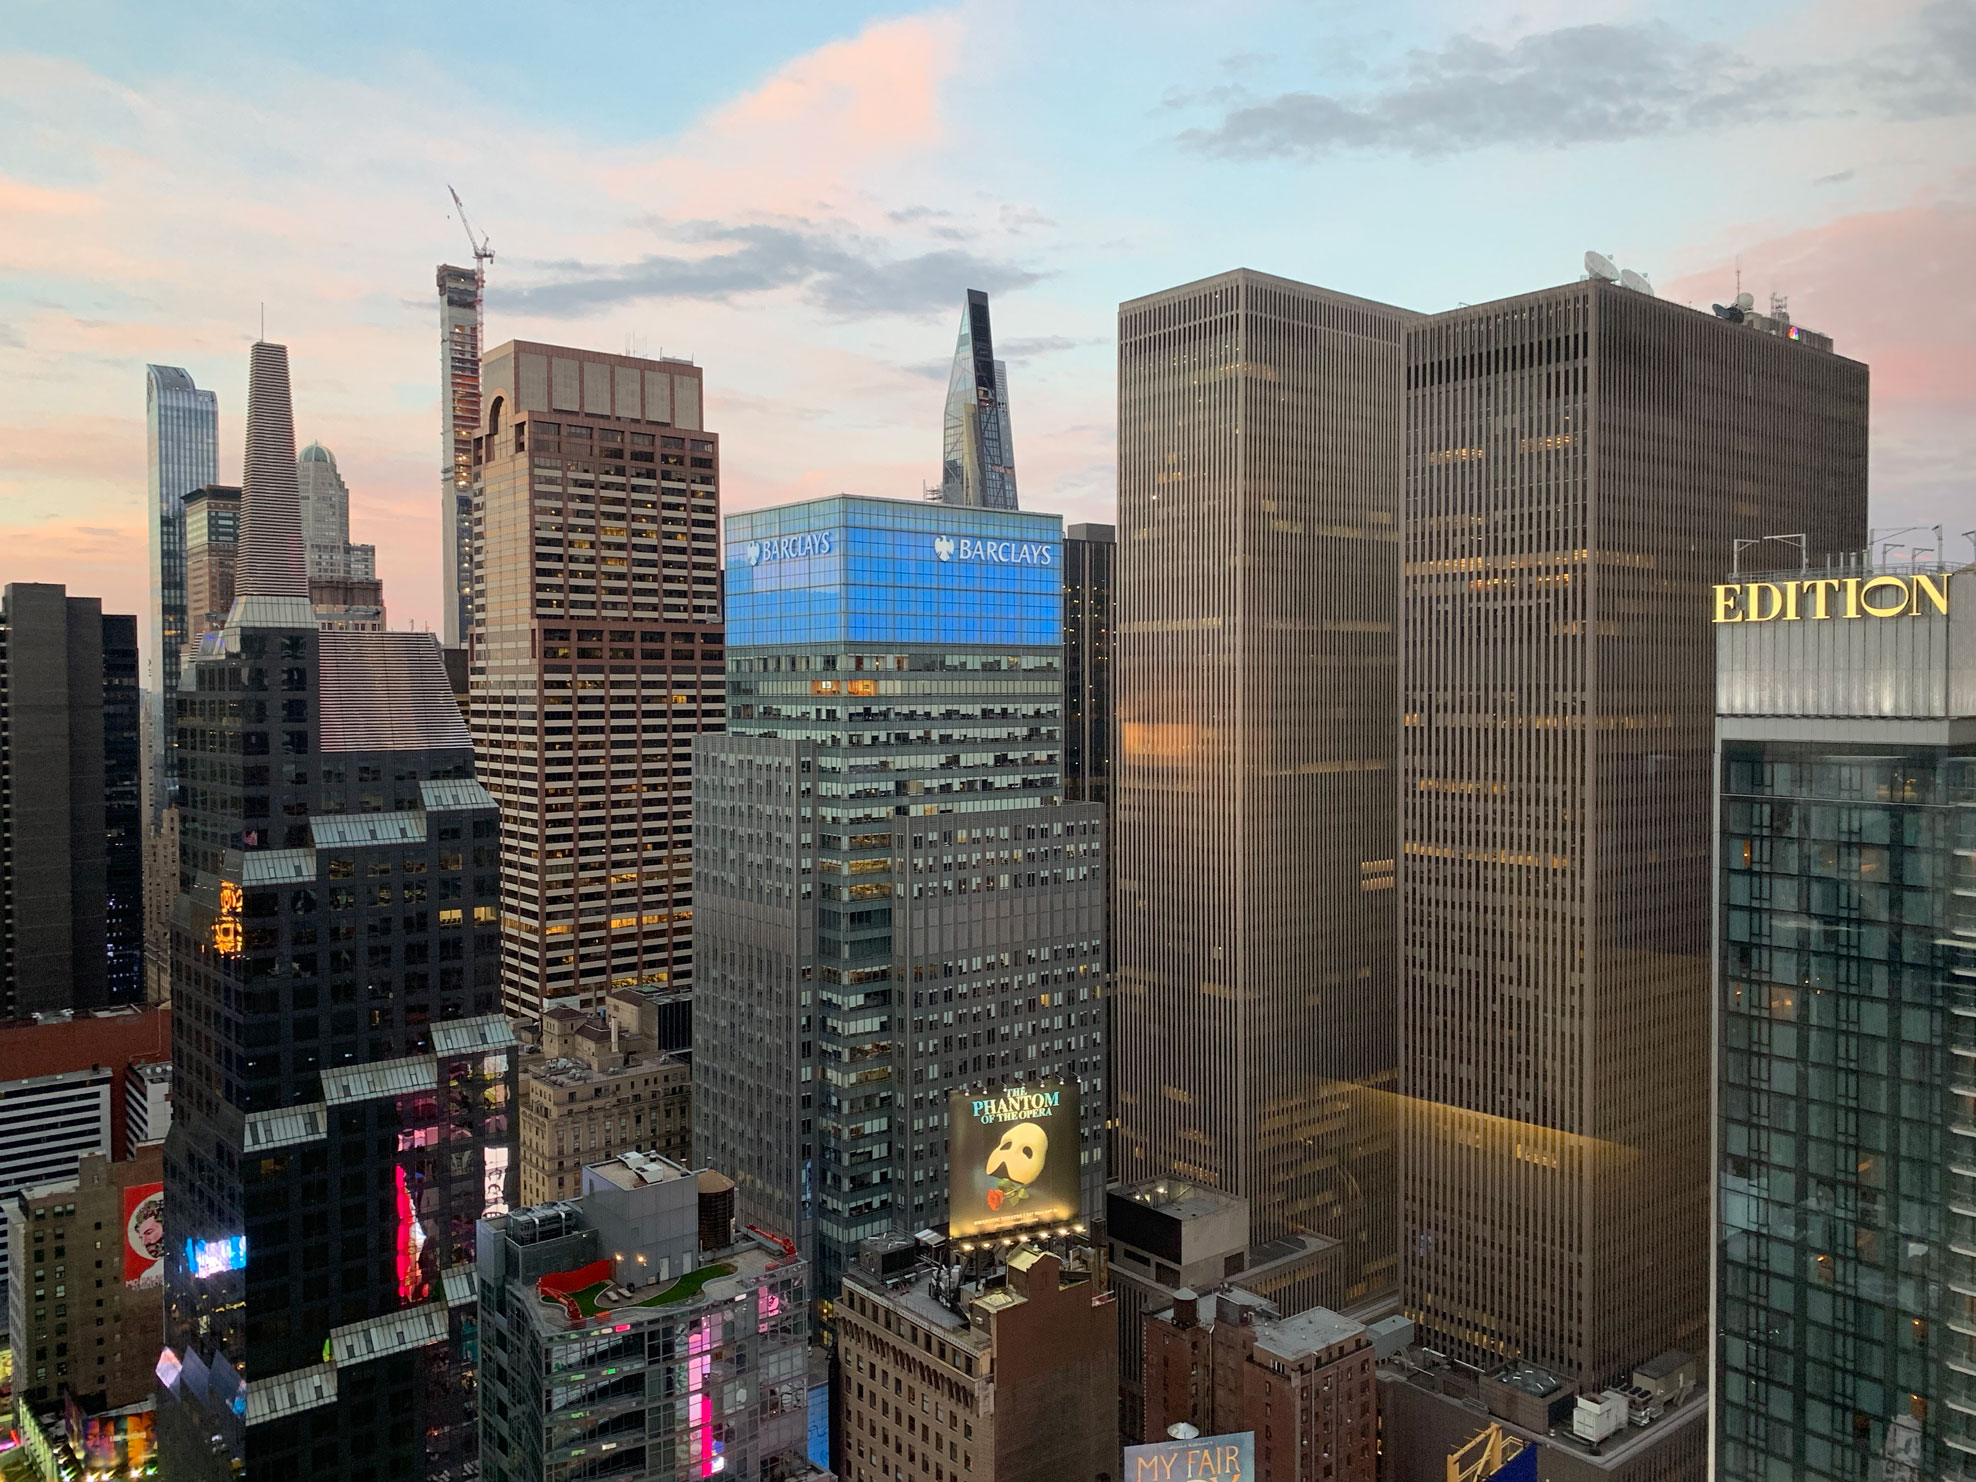 nyc-view-from-hotel-times-square.jpg?1558870712